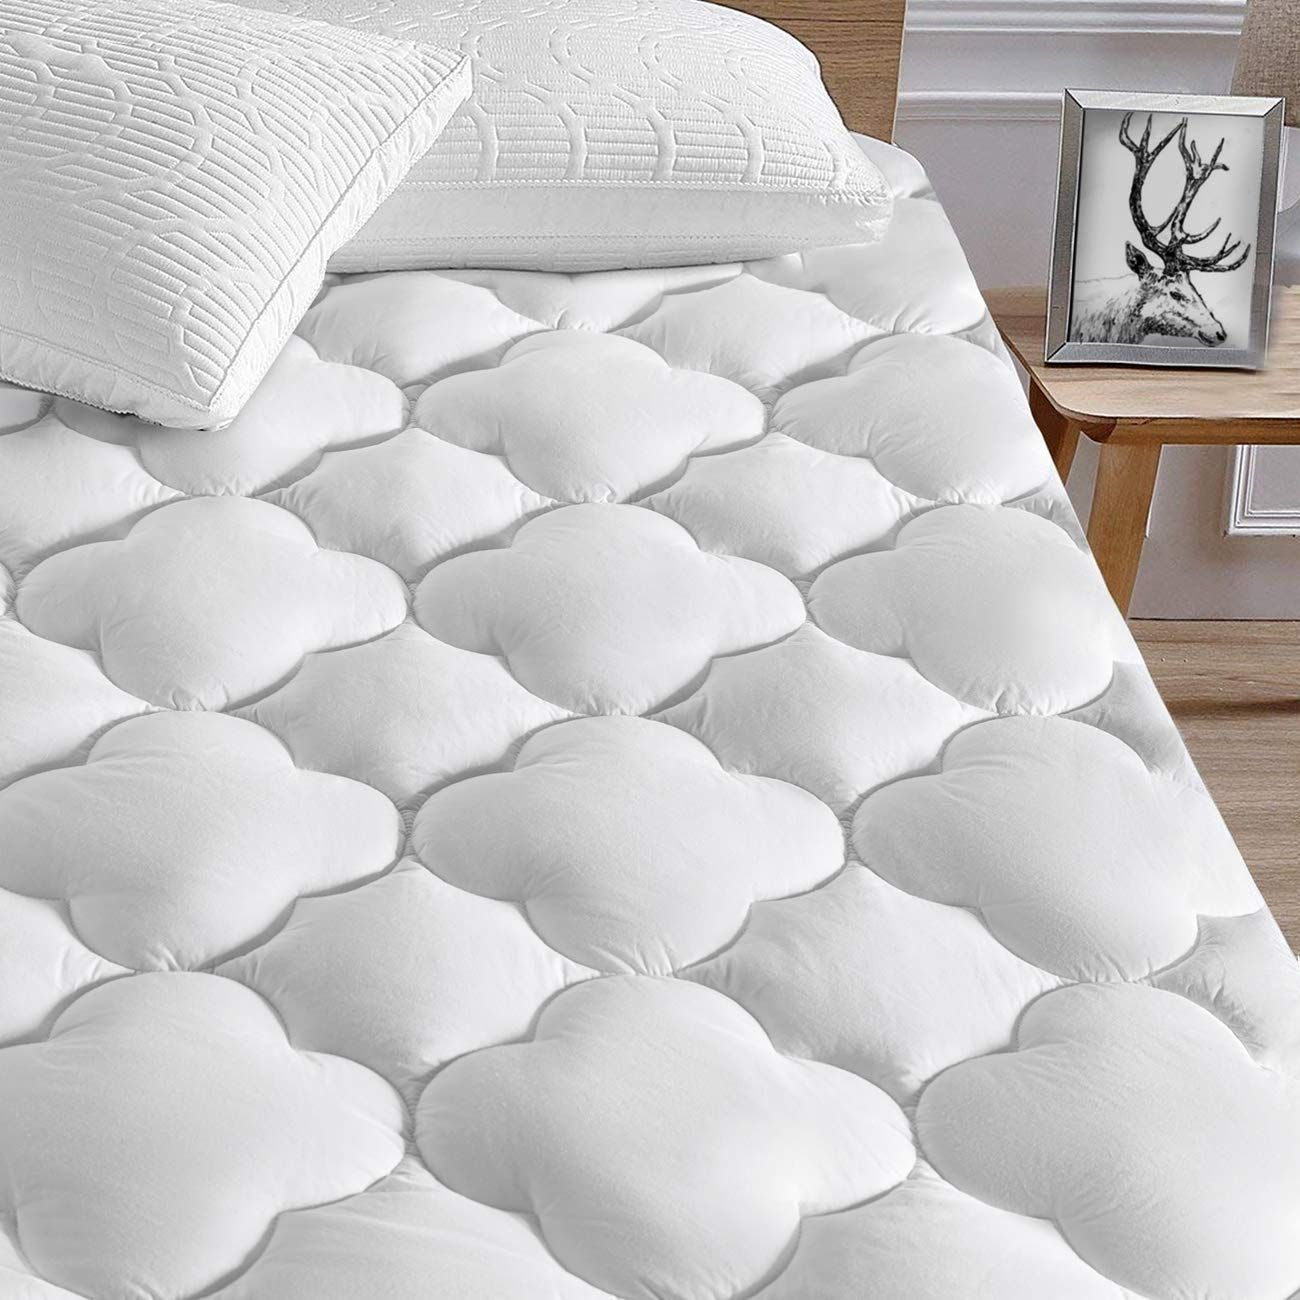 Fitted Cover 4 Available Twin, Pink Lab Tested Waterproof Vinyl Free PapaHome Hypoallergenic Knitted Polyester Mattress Protector